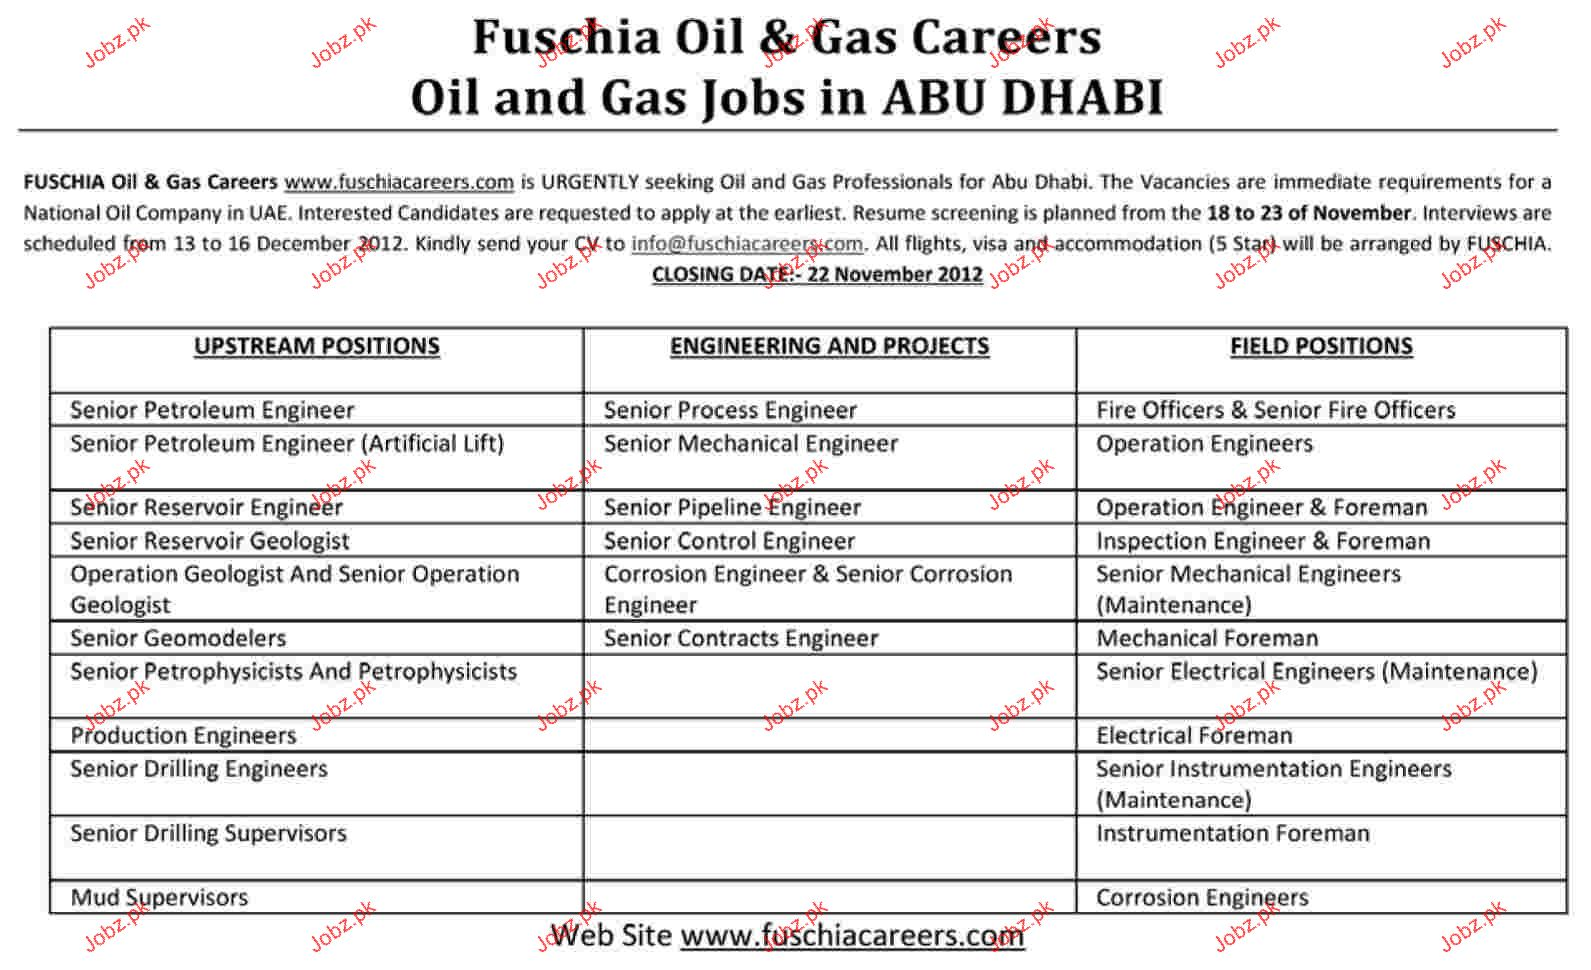 Marvelous Senior Petroleum Engineers, Production Engineers Wanted